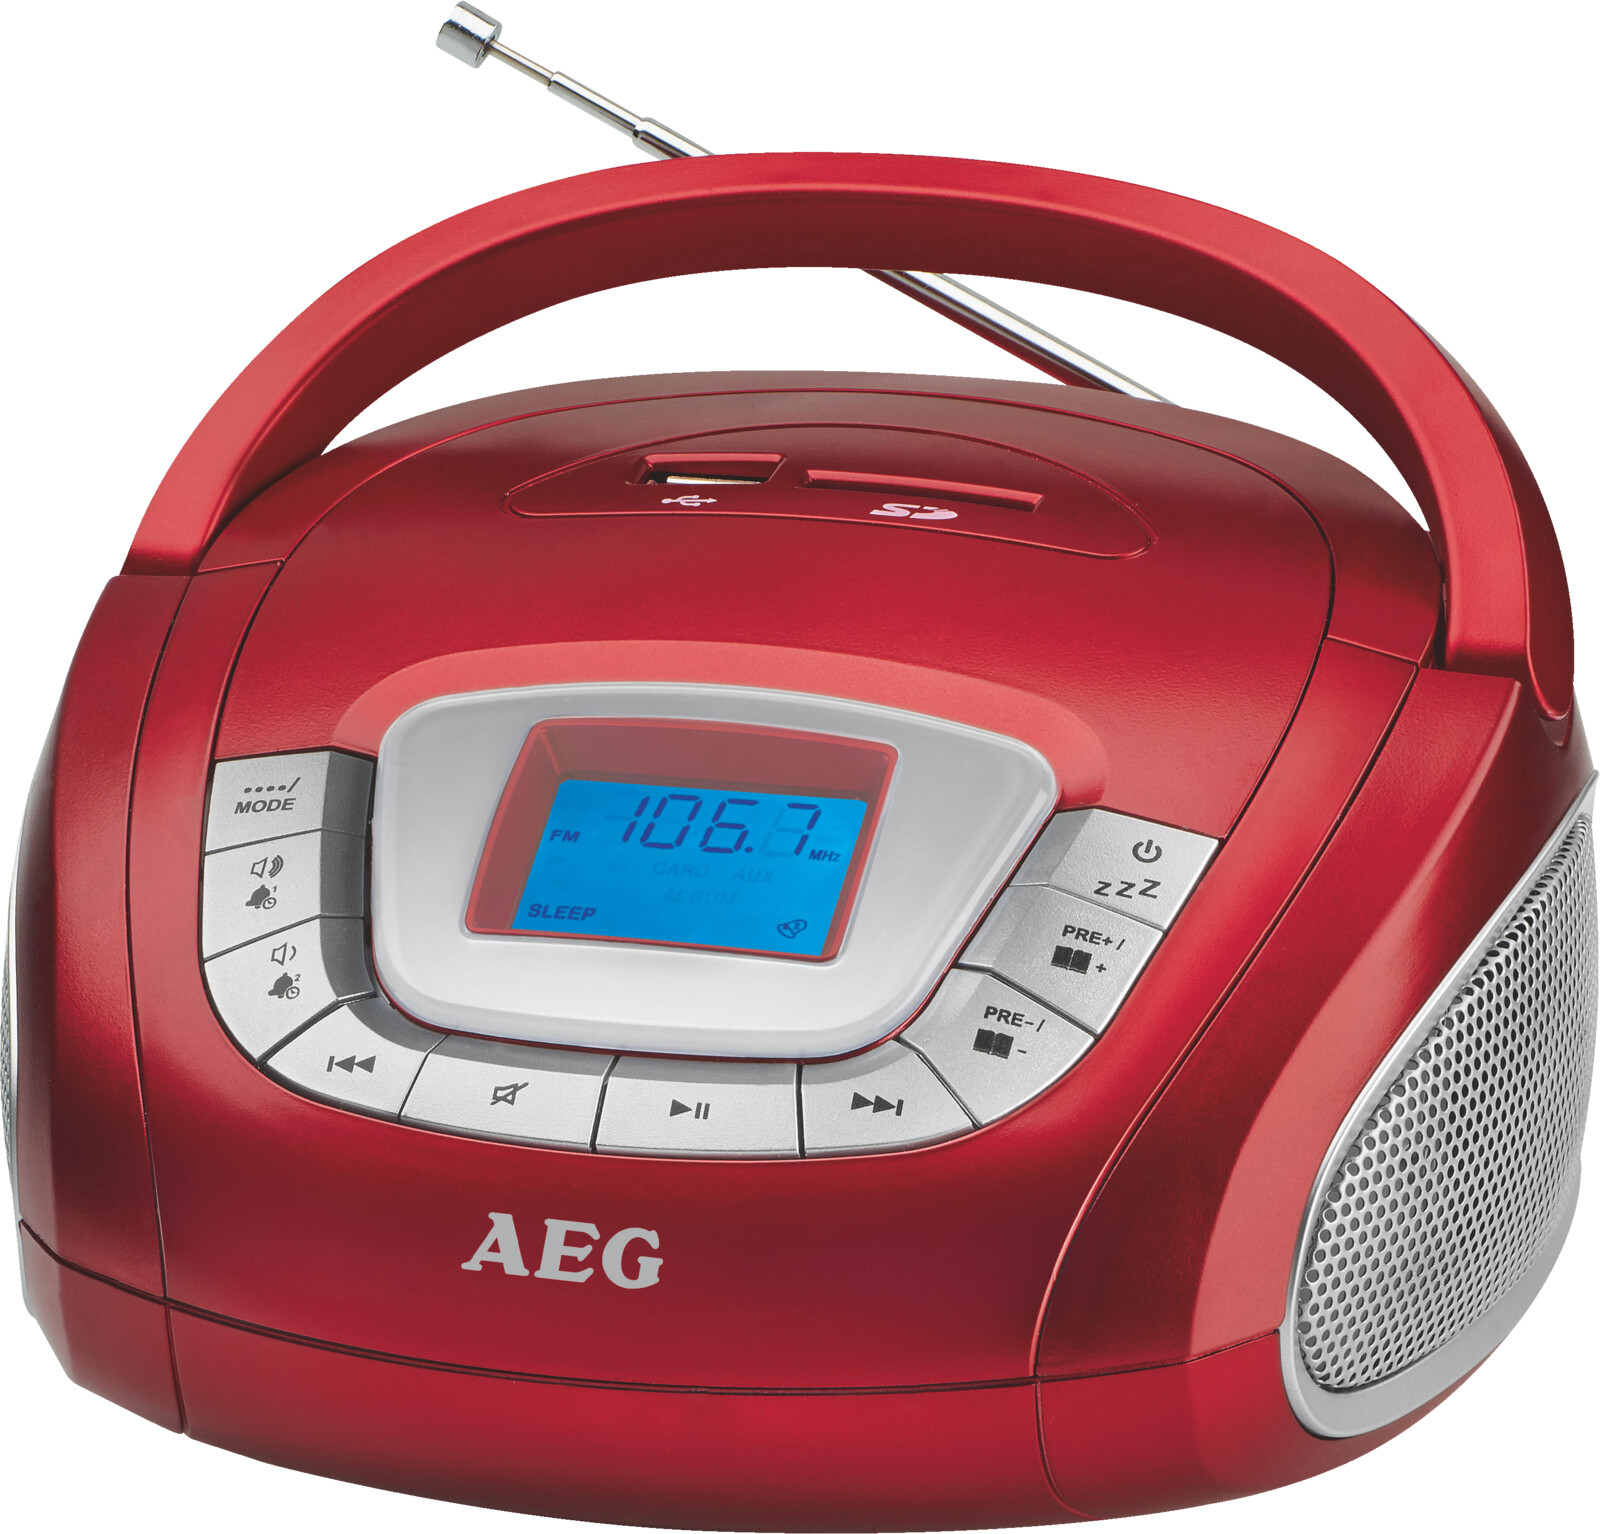 aeg sr 4373 stereoradio ukw rot ebay. Black Bedroom Furniture Sets. Home Design Ideas